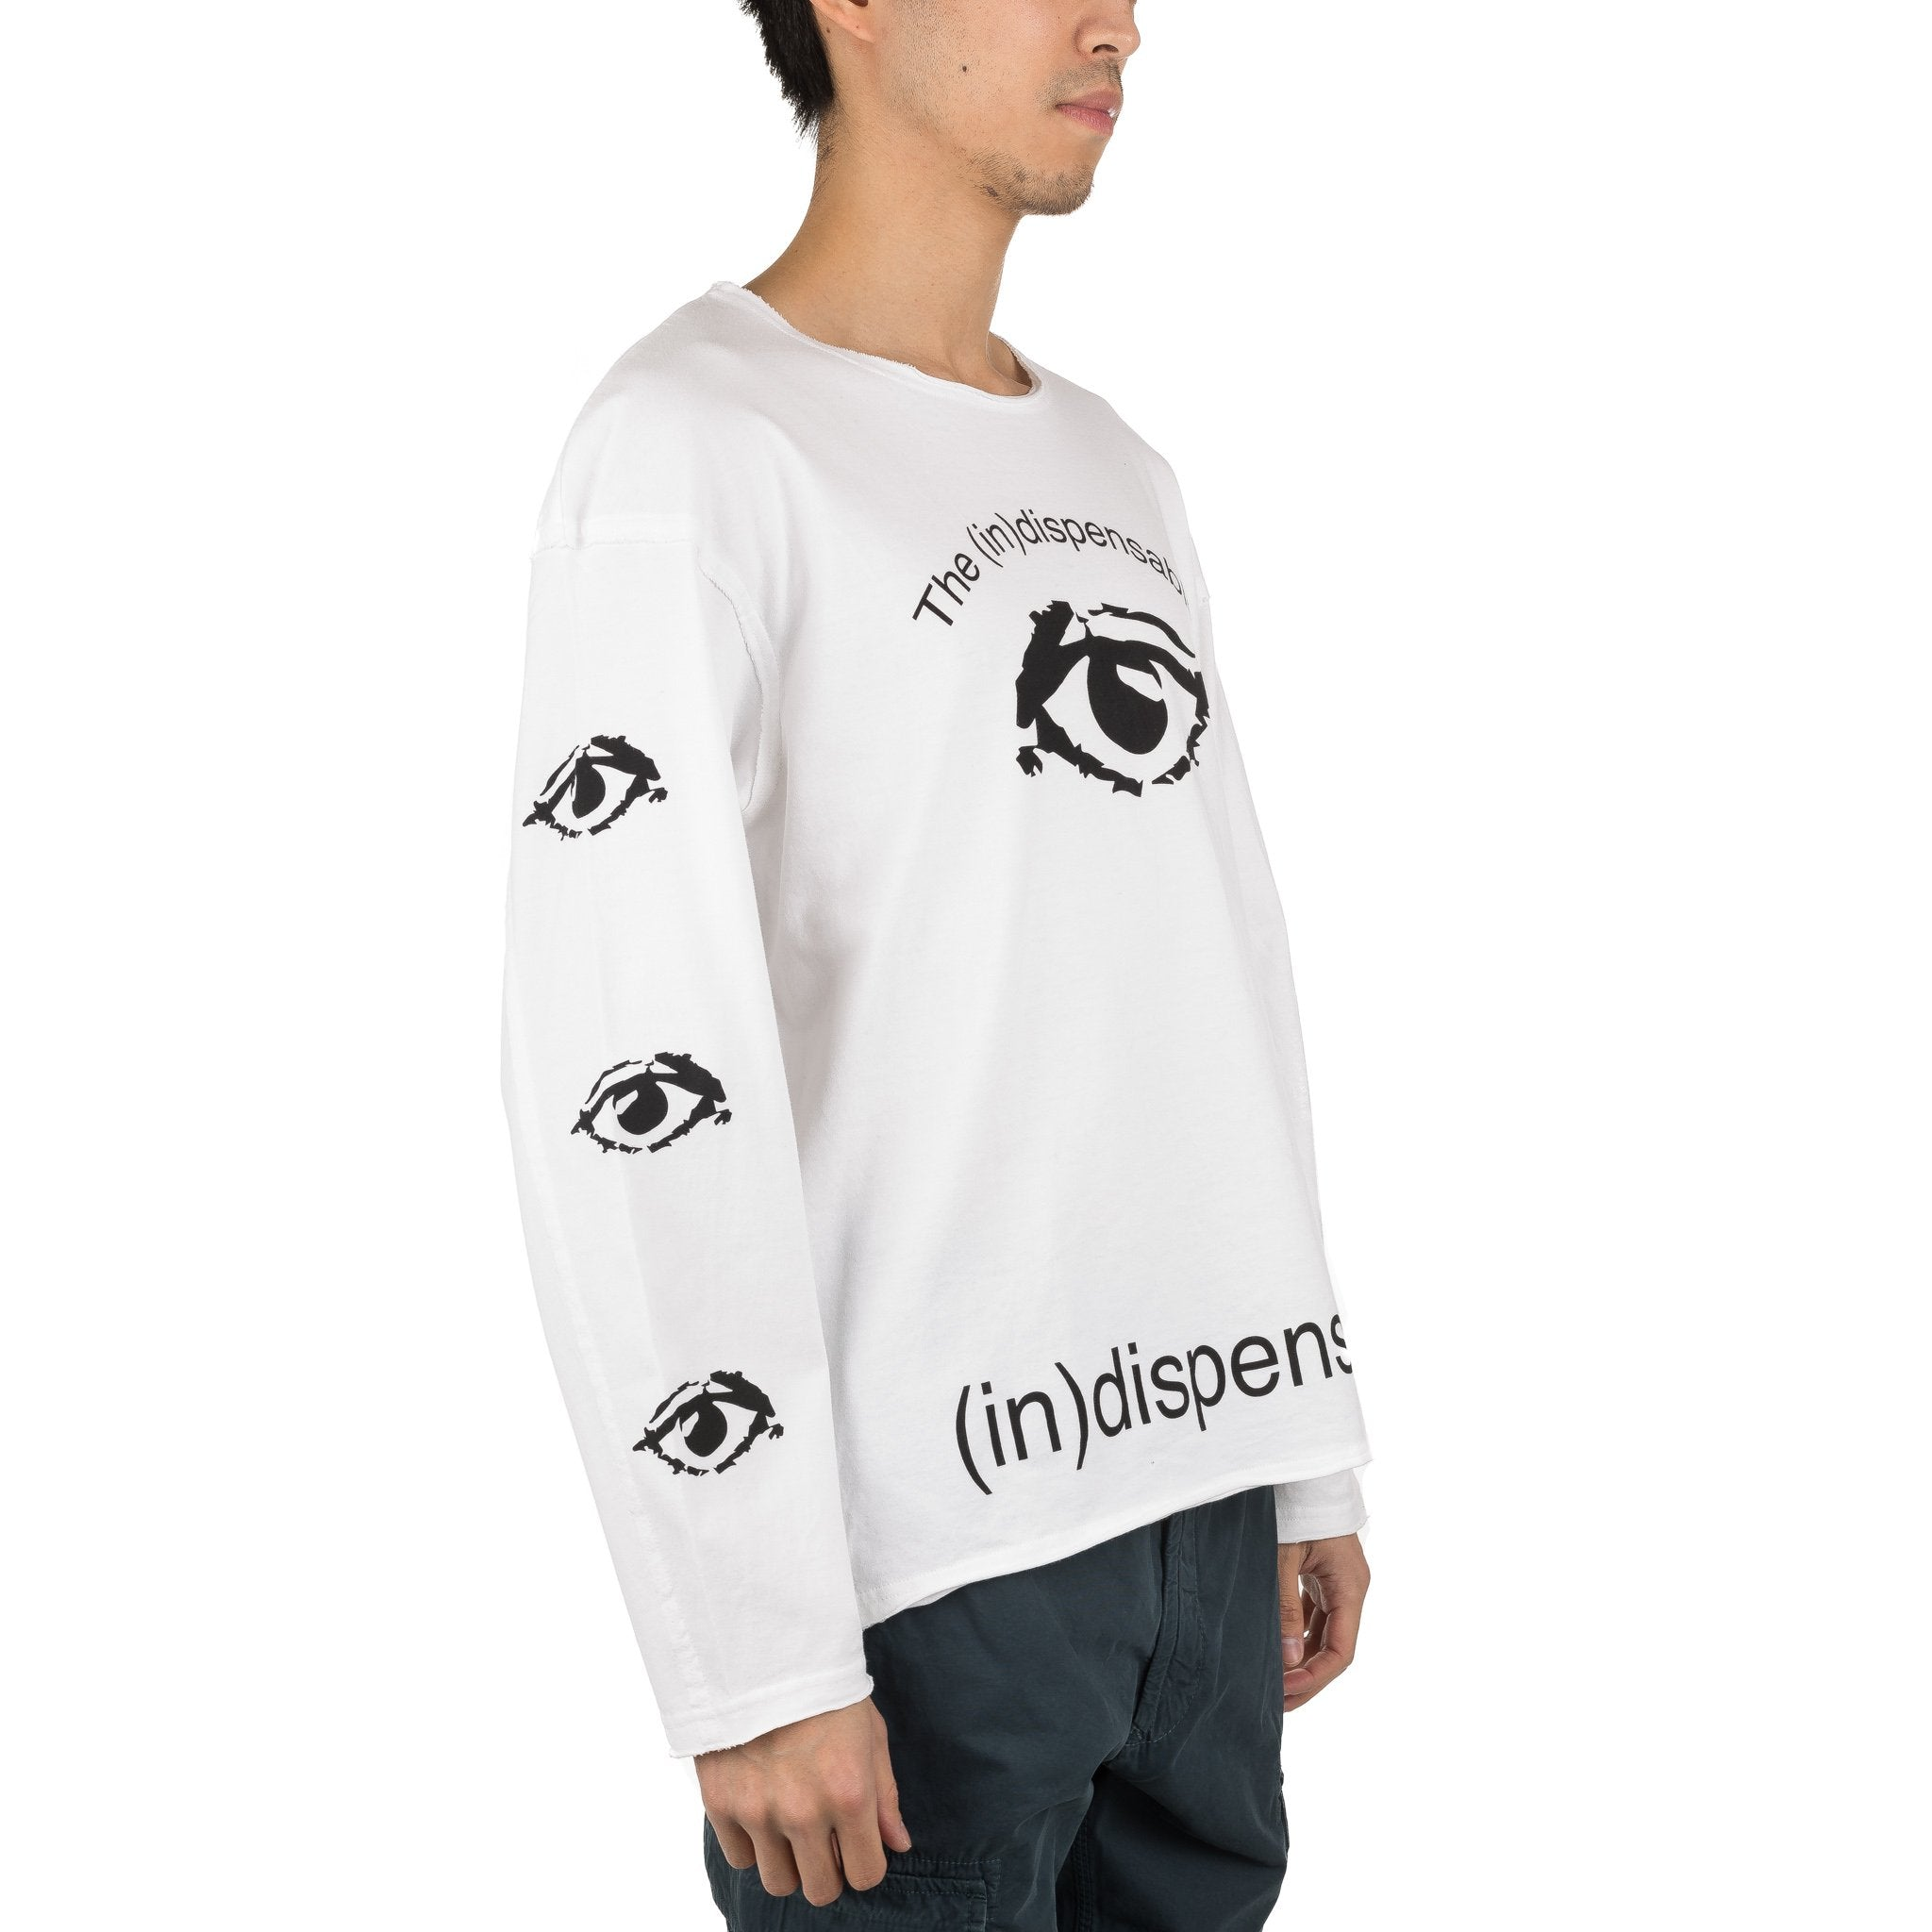 Psylence (in)dispensables L/S Tee JUU4803-3 White